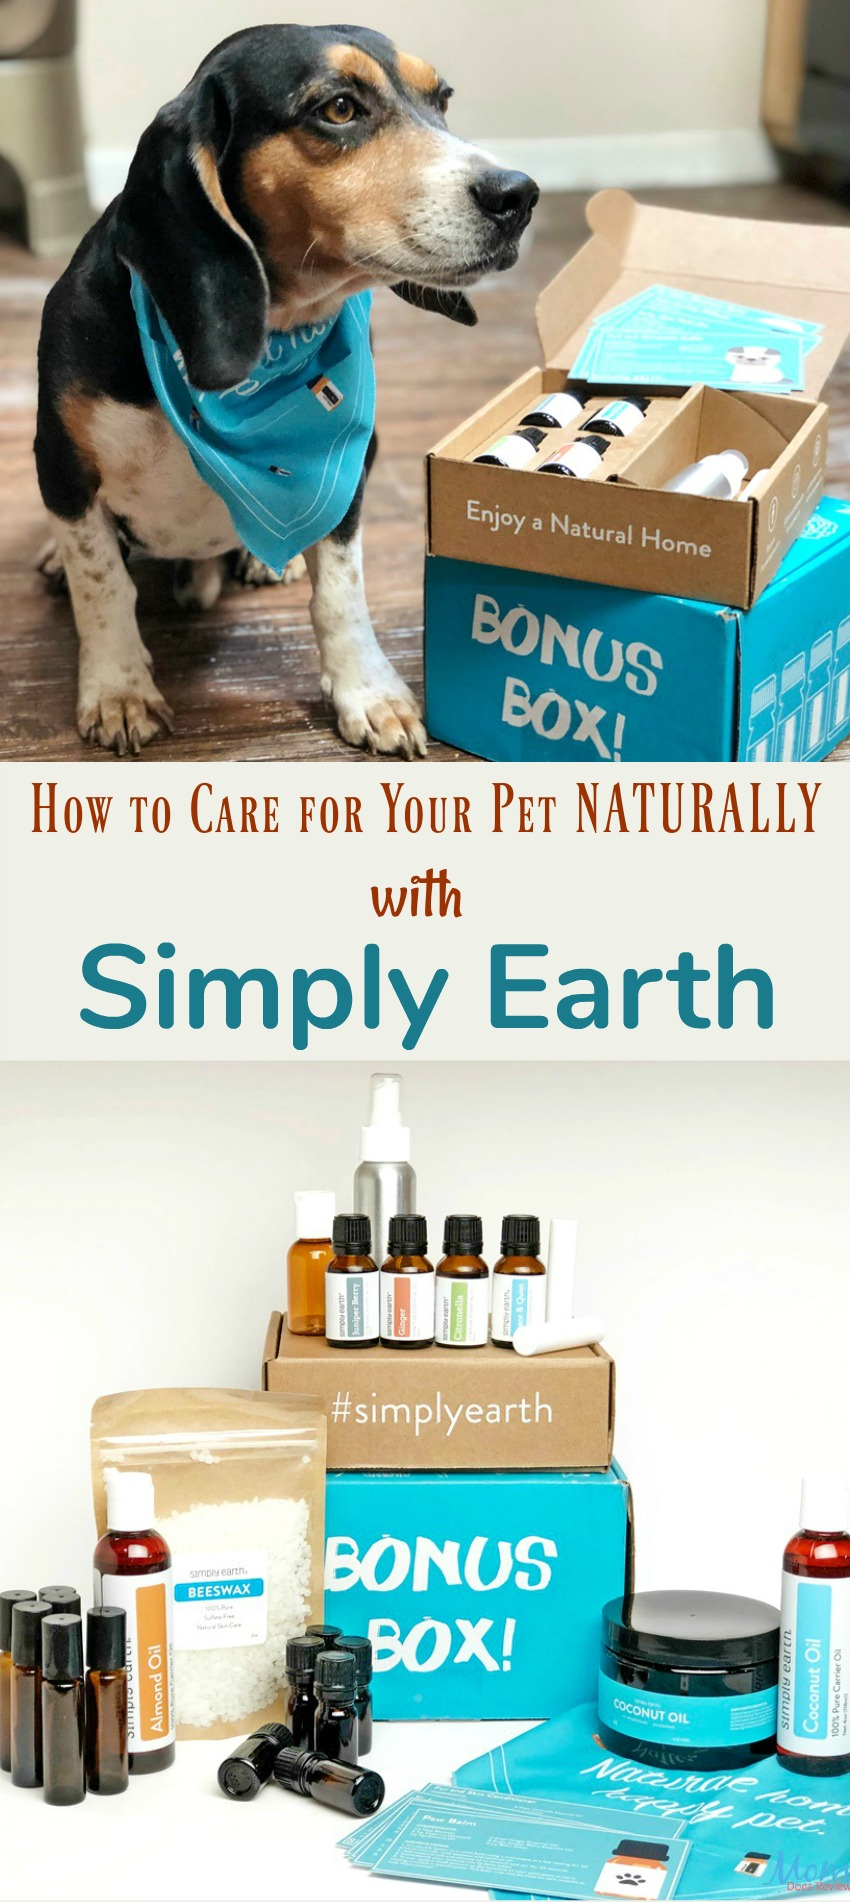 How to Care for Your Pet Naturally with Simply Earth Essential Oils #giftsformom19